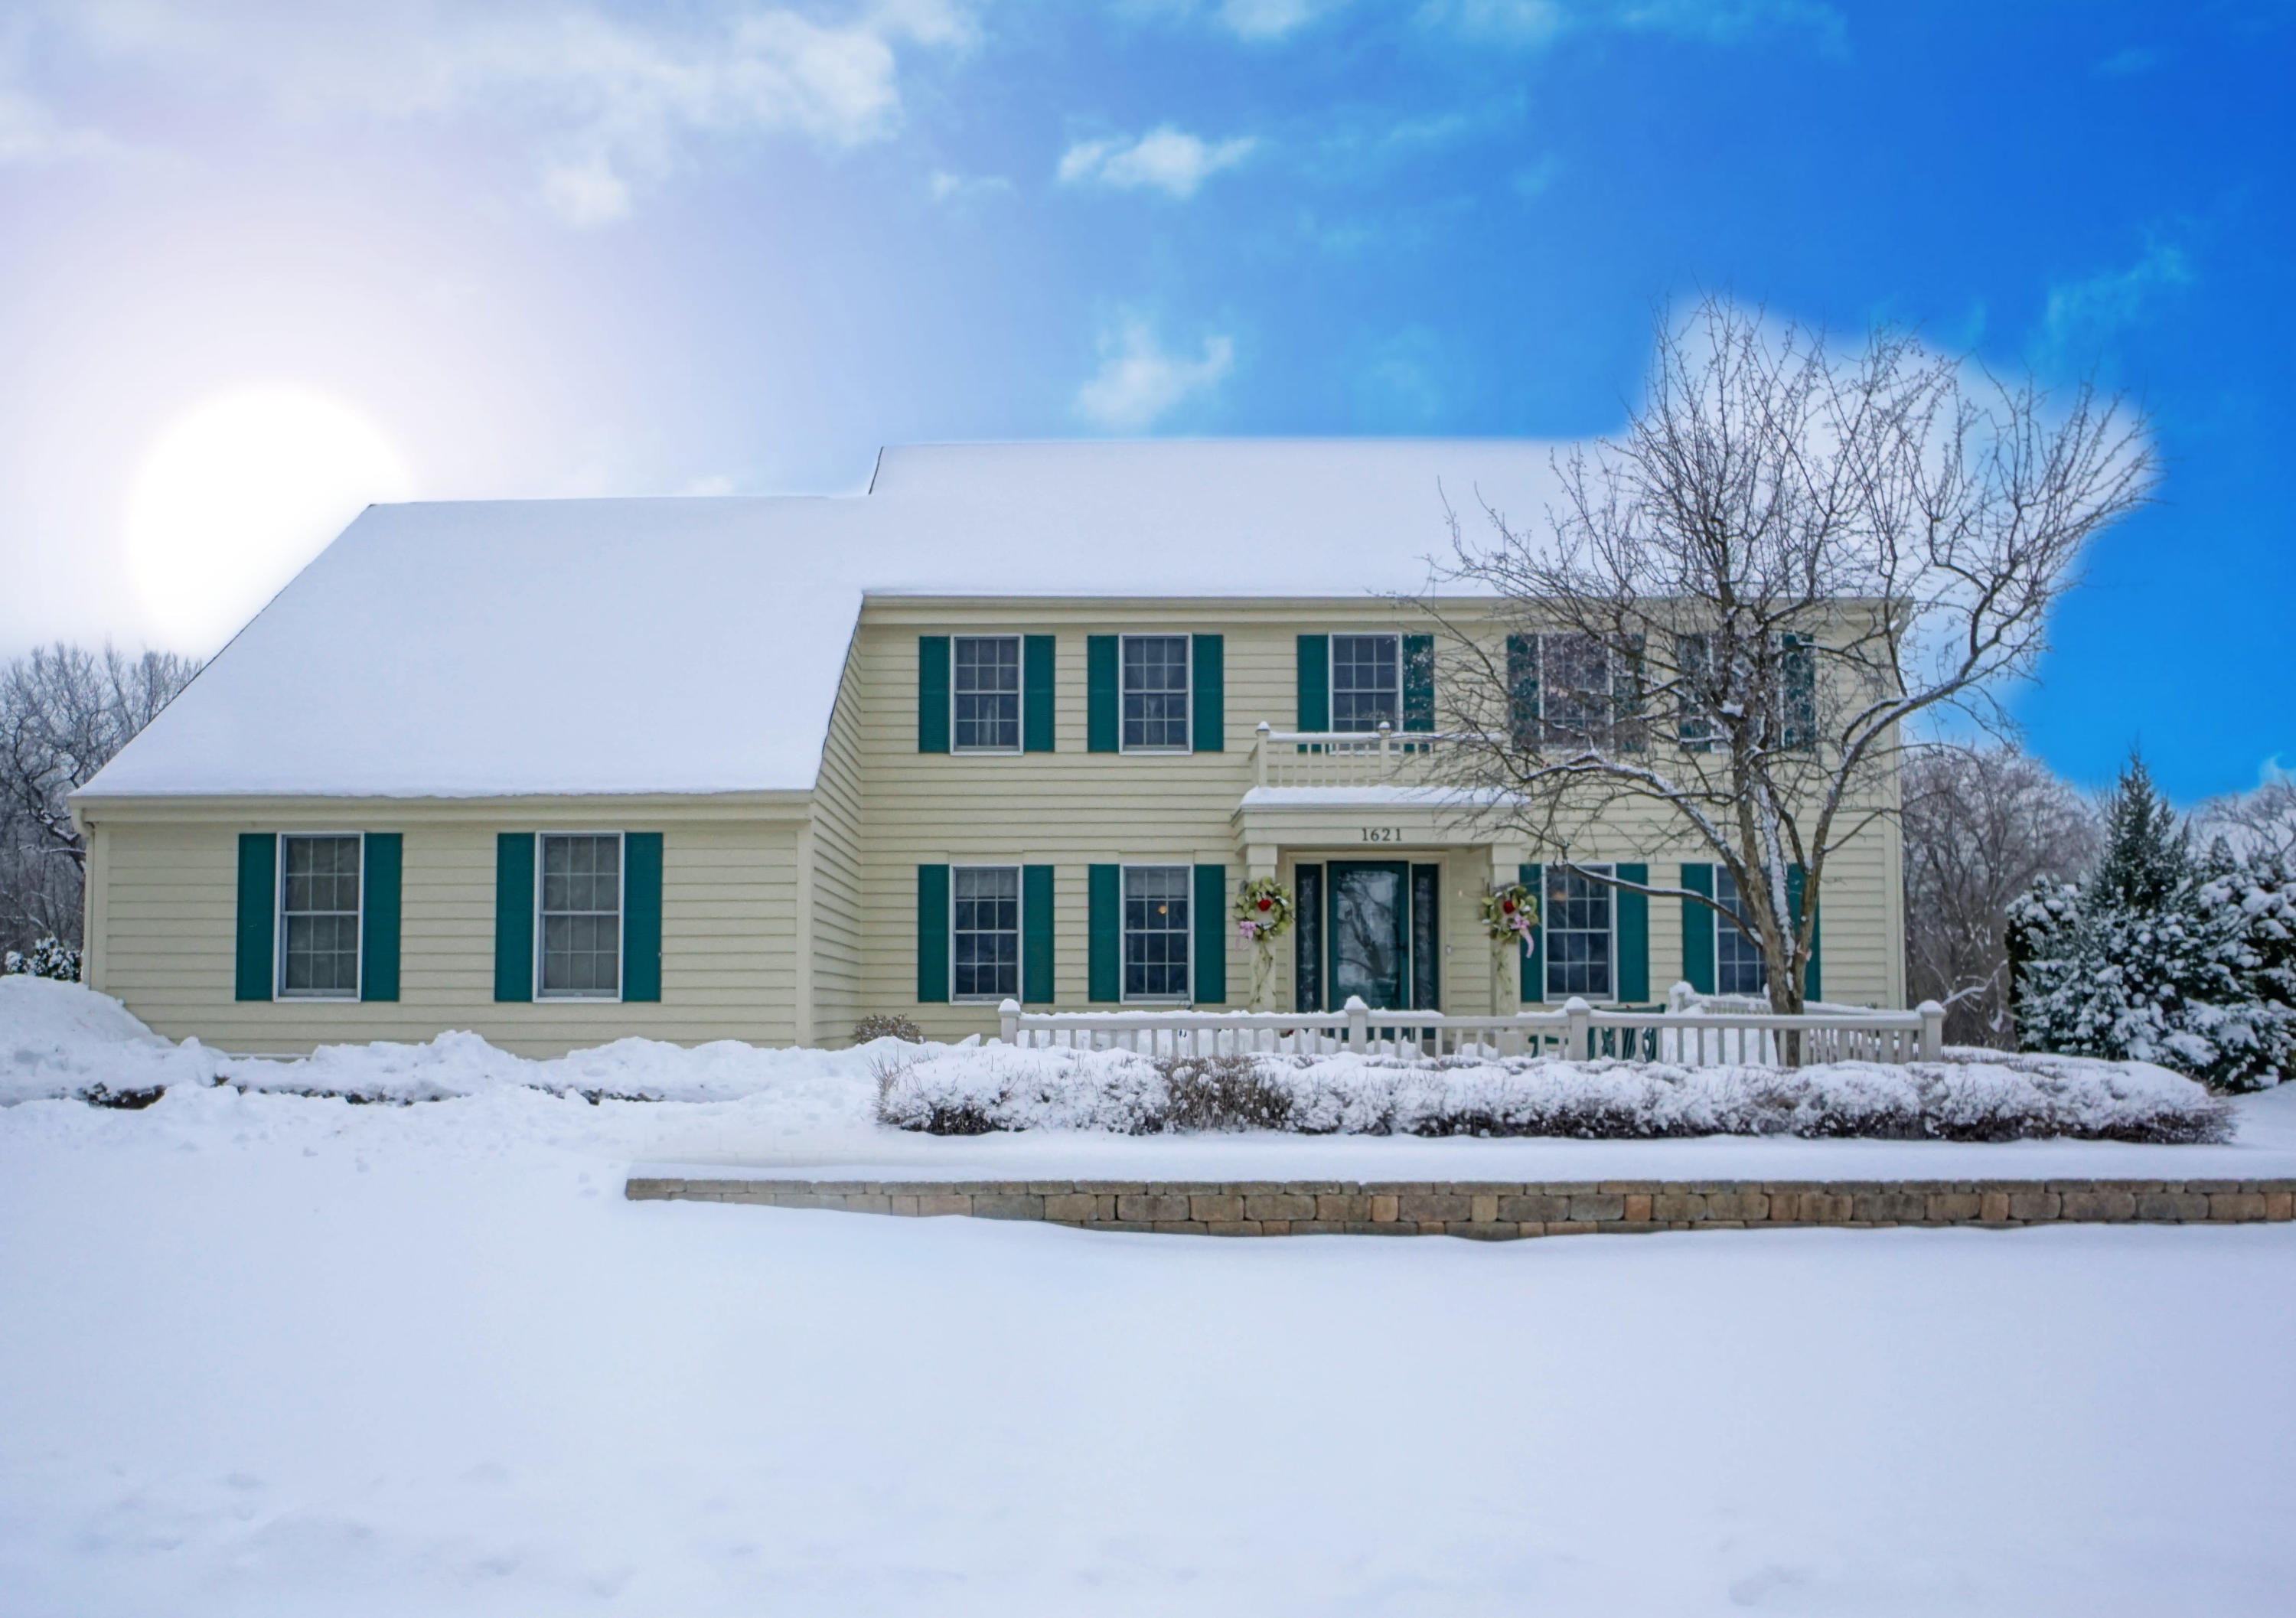 1621 Legend Hill Ln, Waukesha, Wisconsin 53189, 4 Bedrooms Bedrooms, 10 Rooms Rooms,3 BathroomsBathrooms,Single-Family,For Sale,Legend Hill Ln,1722981